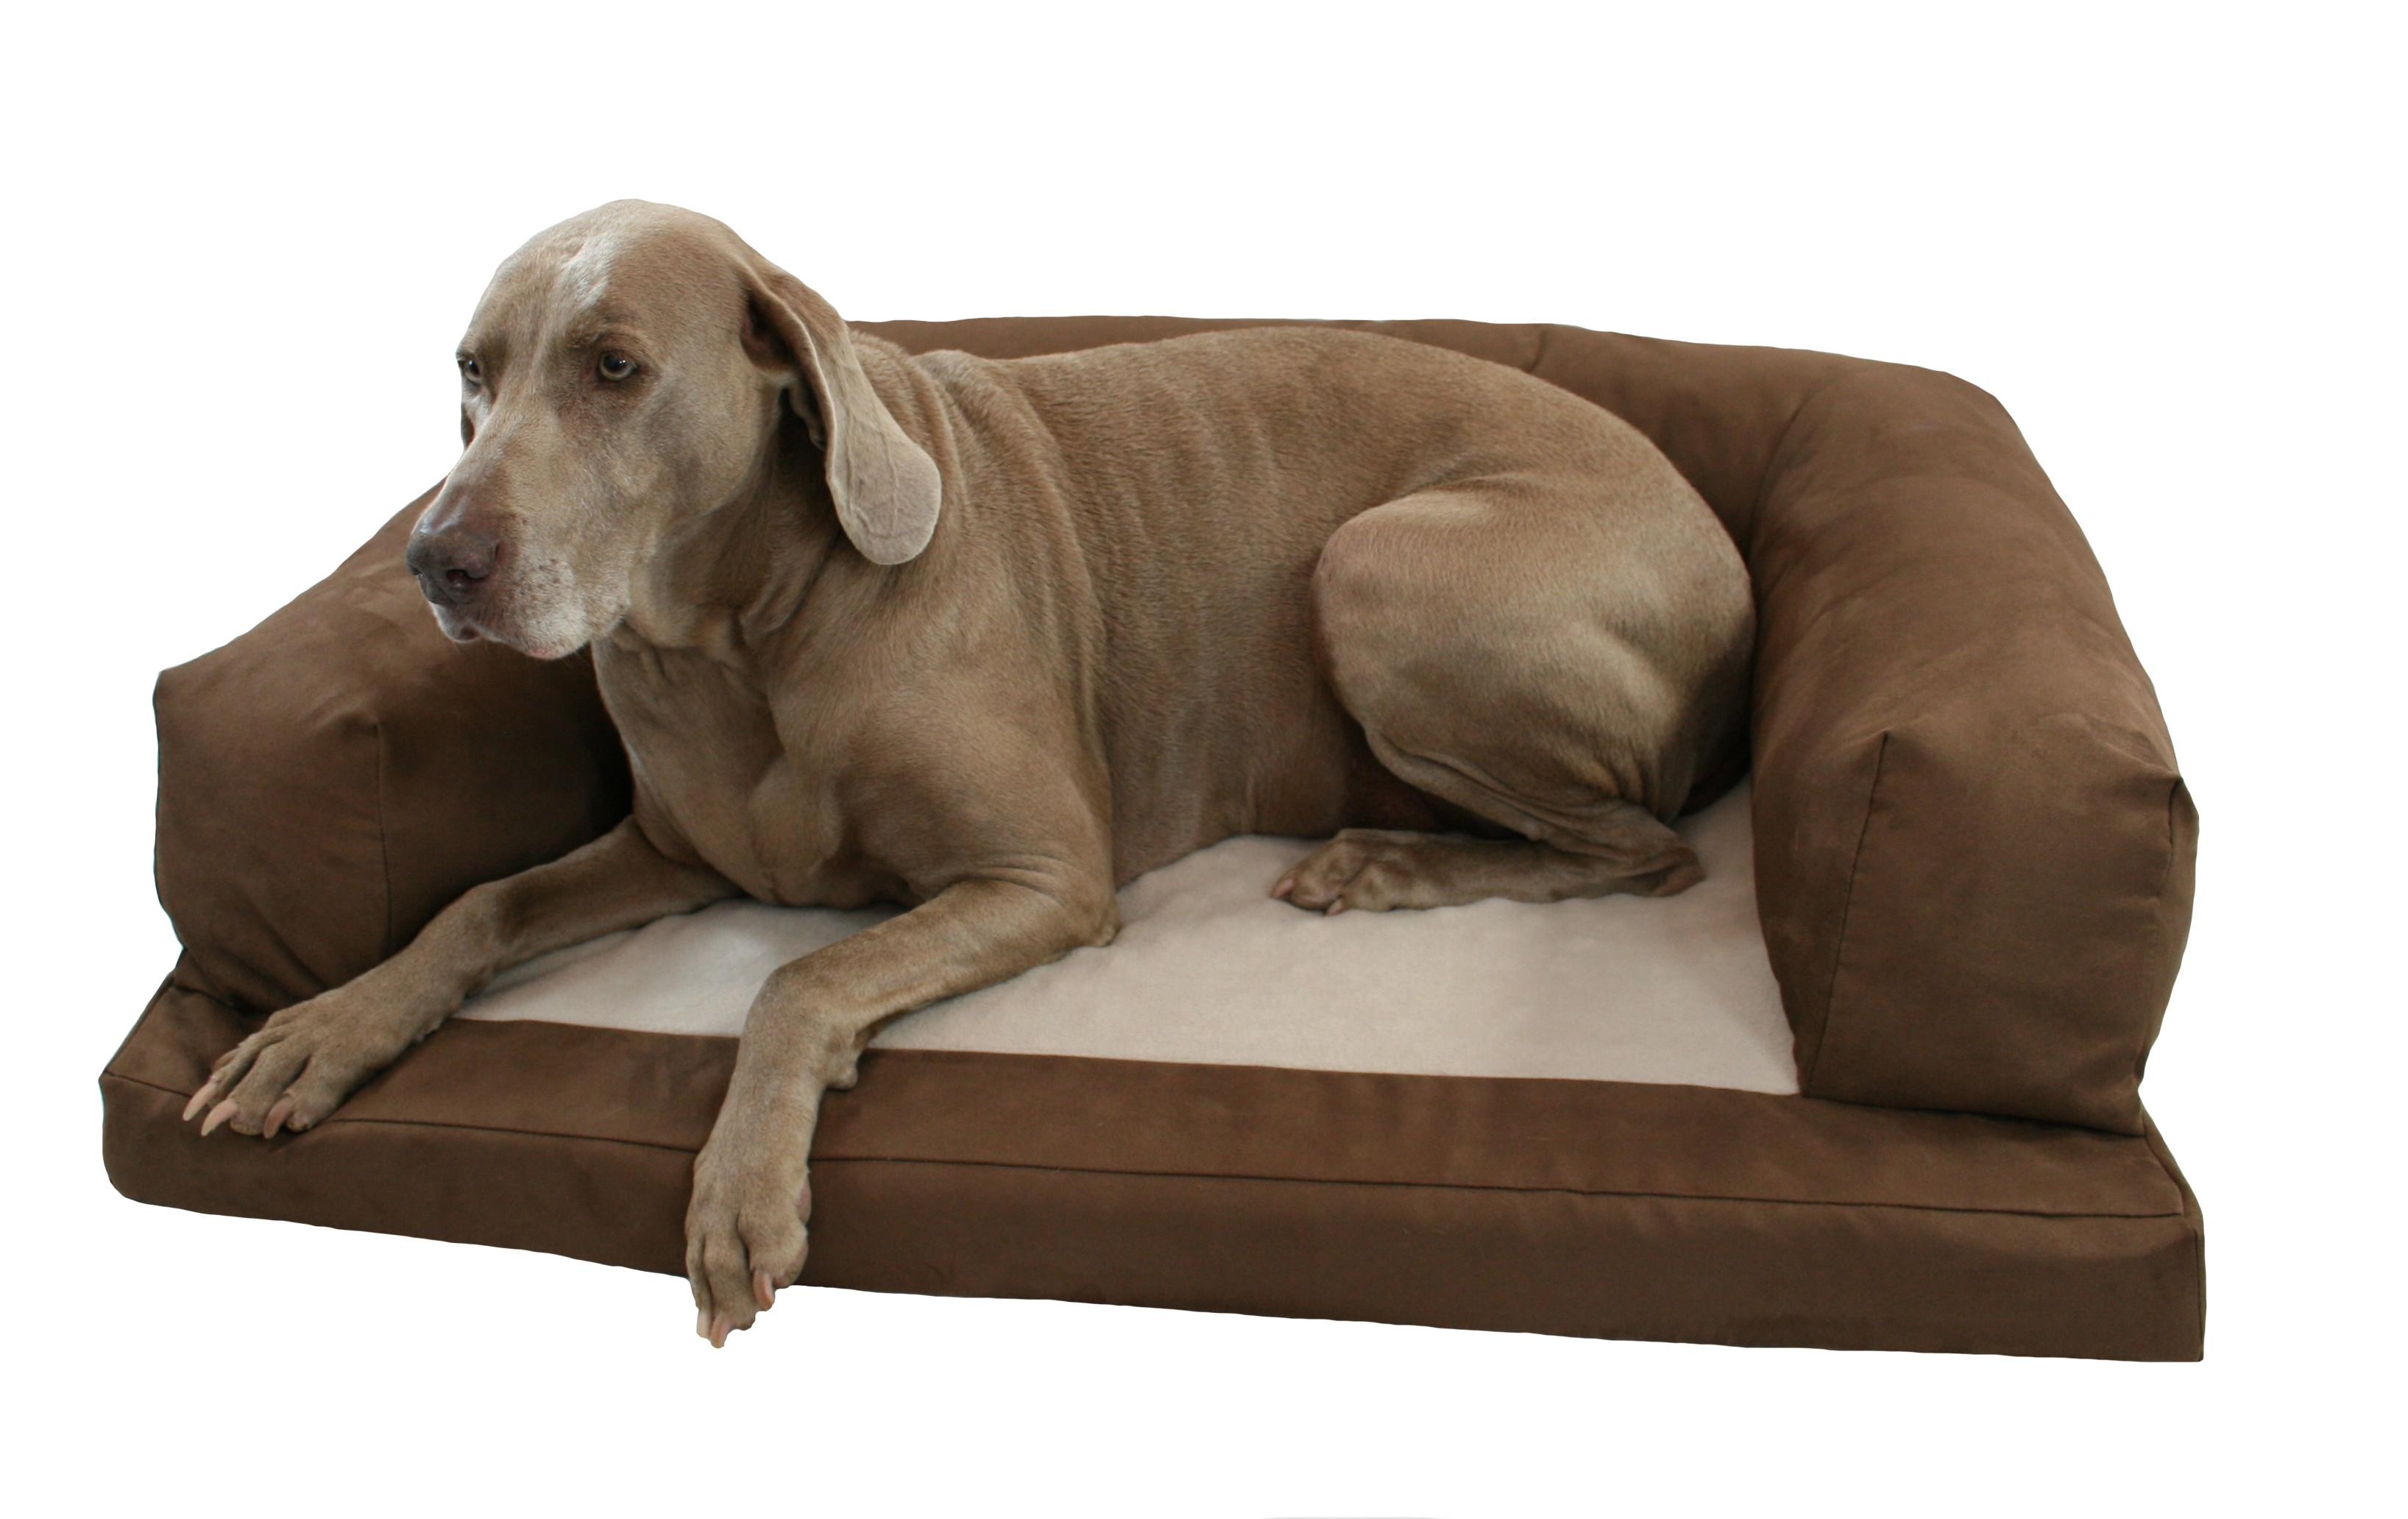 bronson gq brand mattress large beds dog story a dogs bed new unveils your casper for